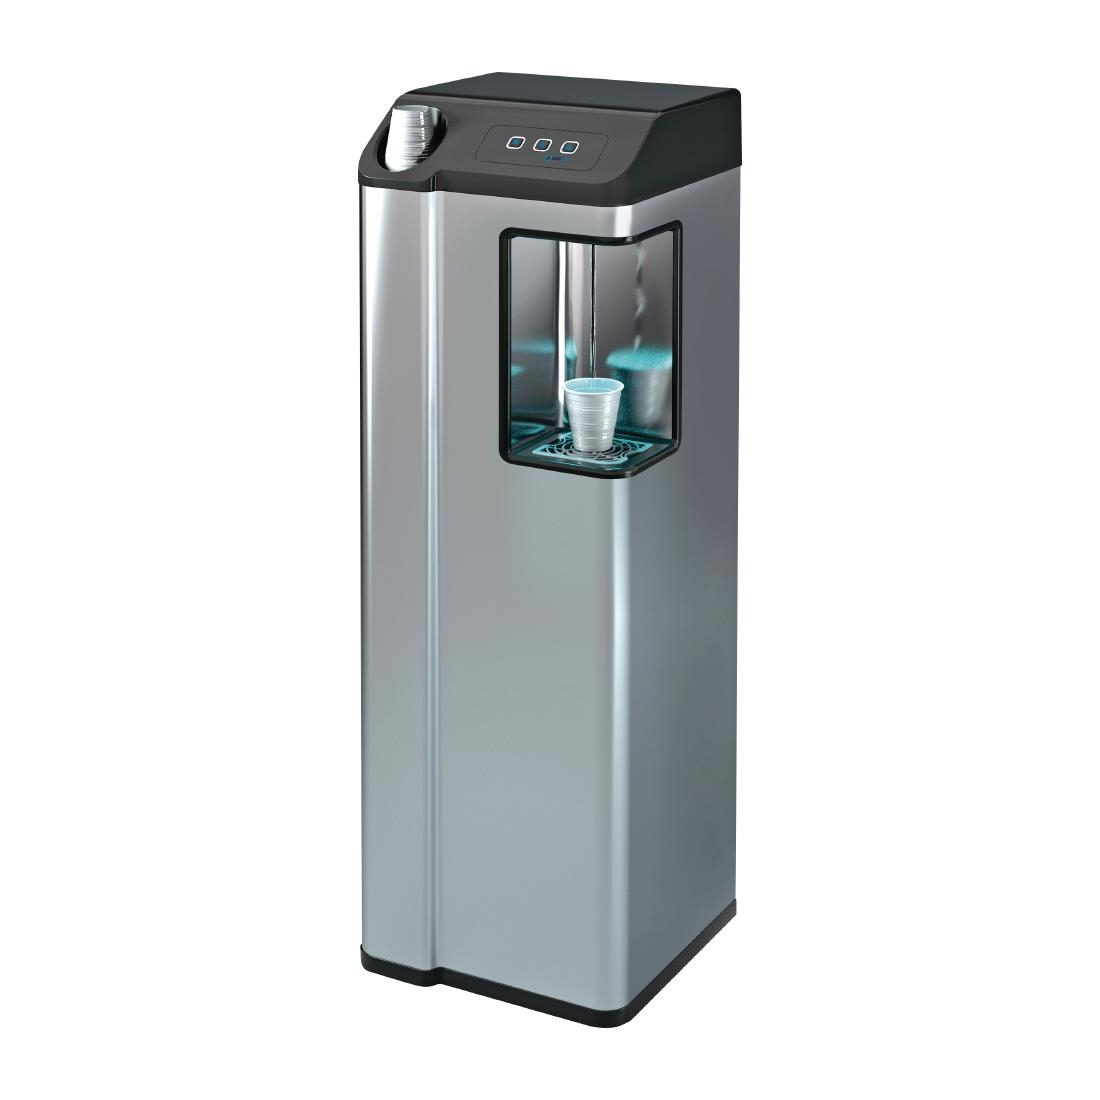 Image of Cosmetal Aquality20 Floorstanding Water Dispenser Machine Only